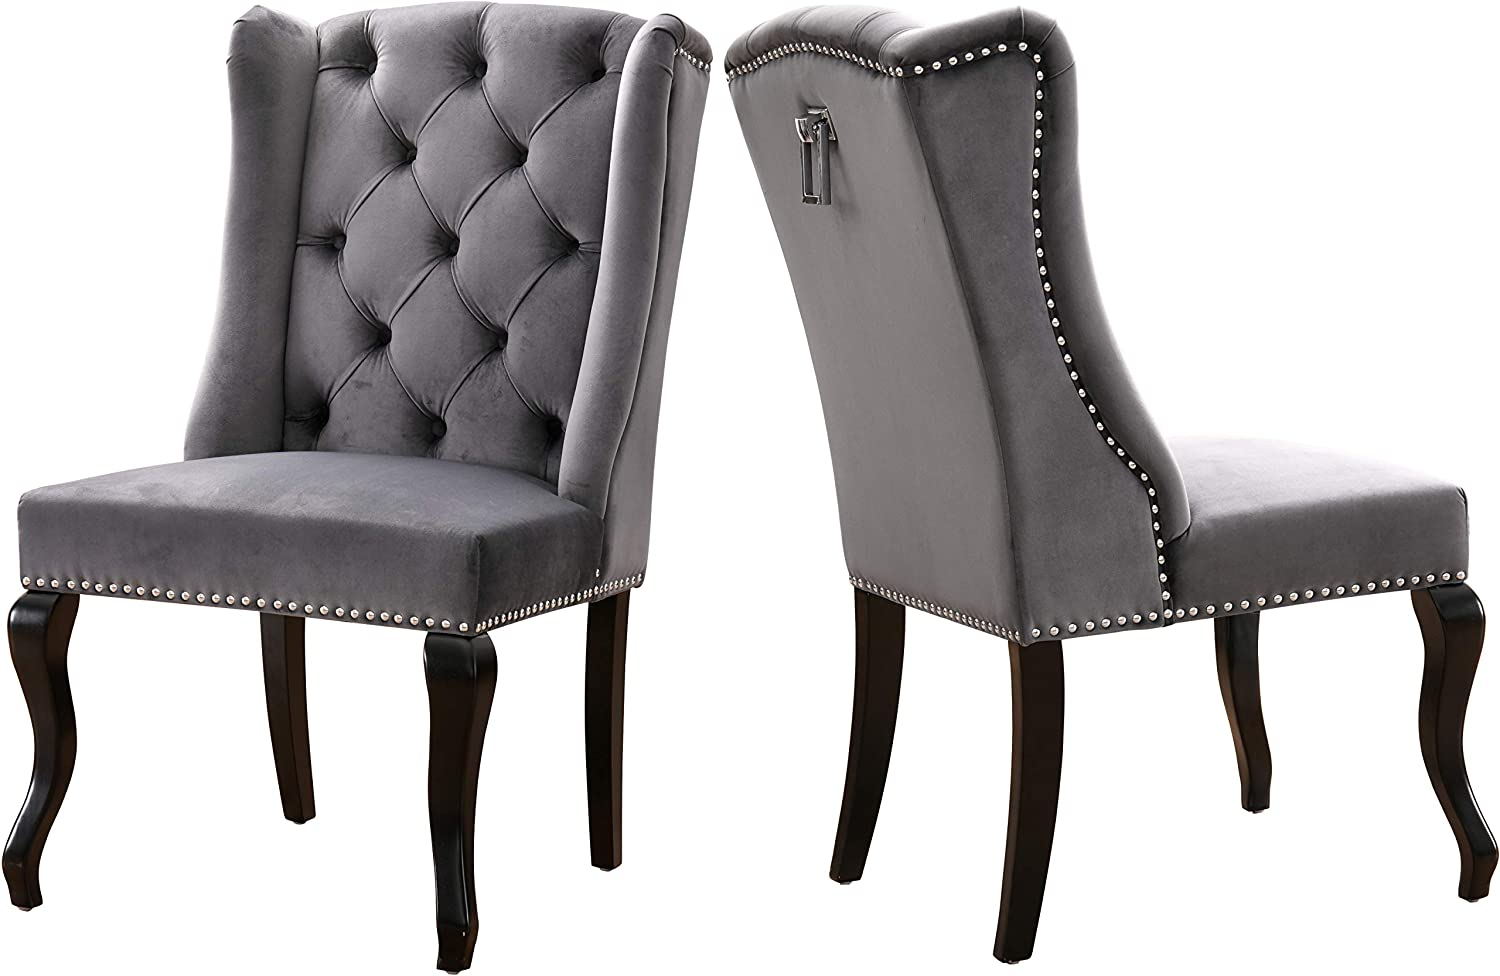 Meridian Furniture Suri Collection Modern Contemporary Grey Velvet Upholstered Dining Chair with Wood Legs, Luxurious Button Tufting, Nailhead Trim, Set of 2, 23 W x 26 D x 41 H,